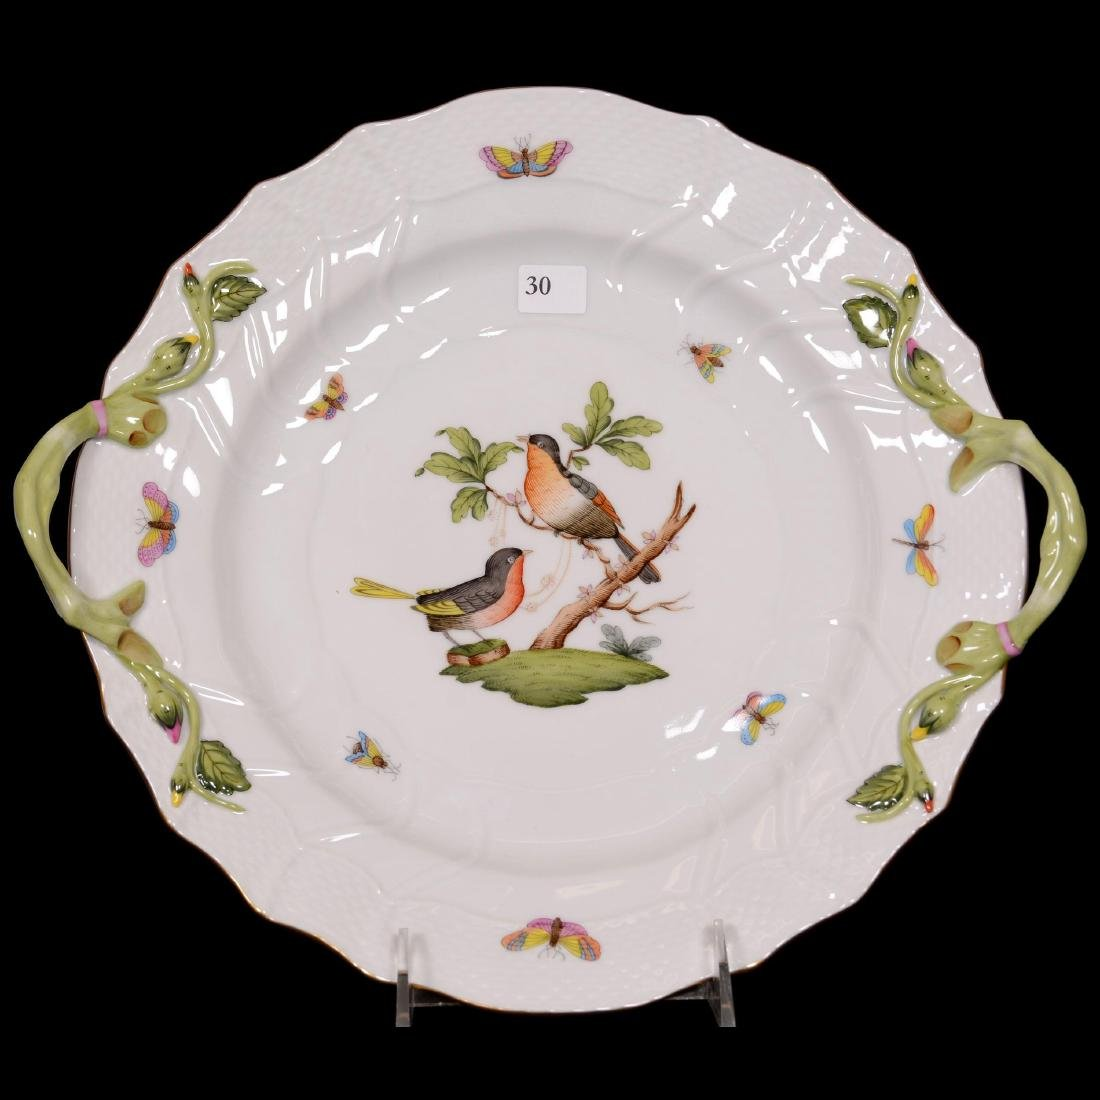 Herend Hungary Porcelain Hand Painted Two-Handled Cake